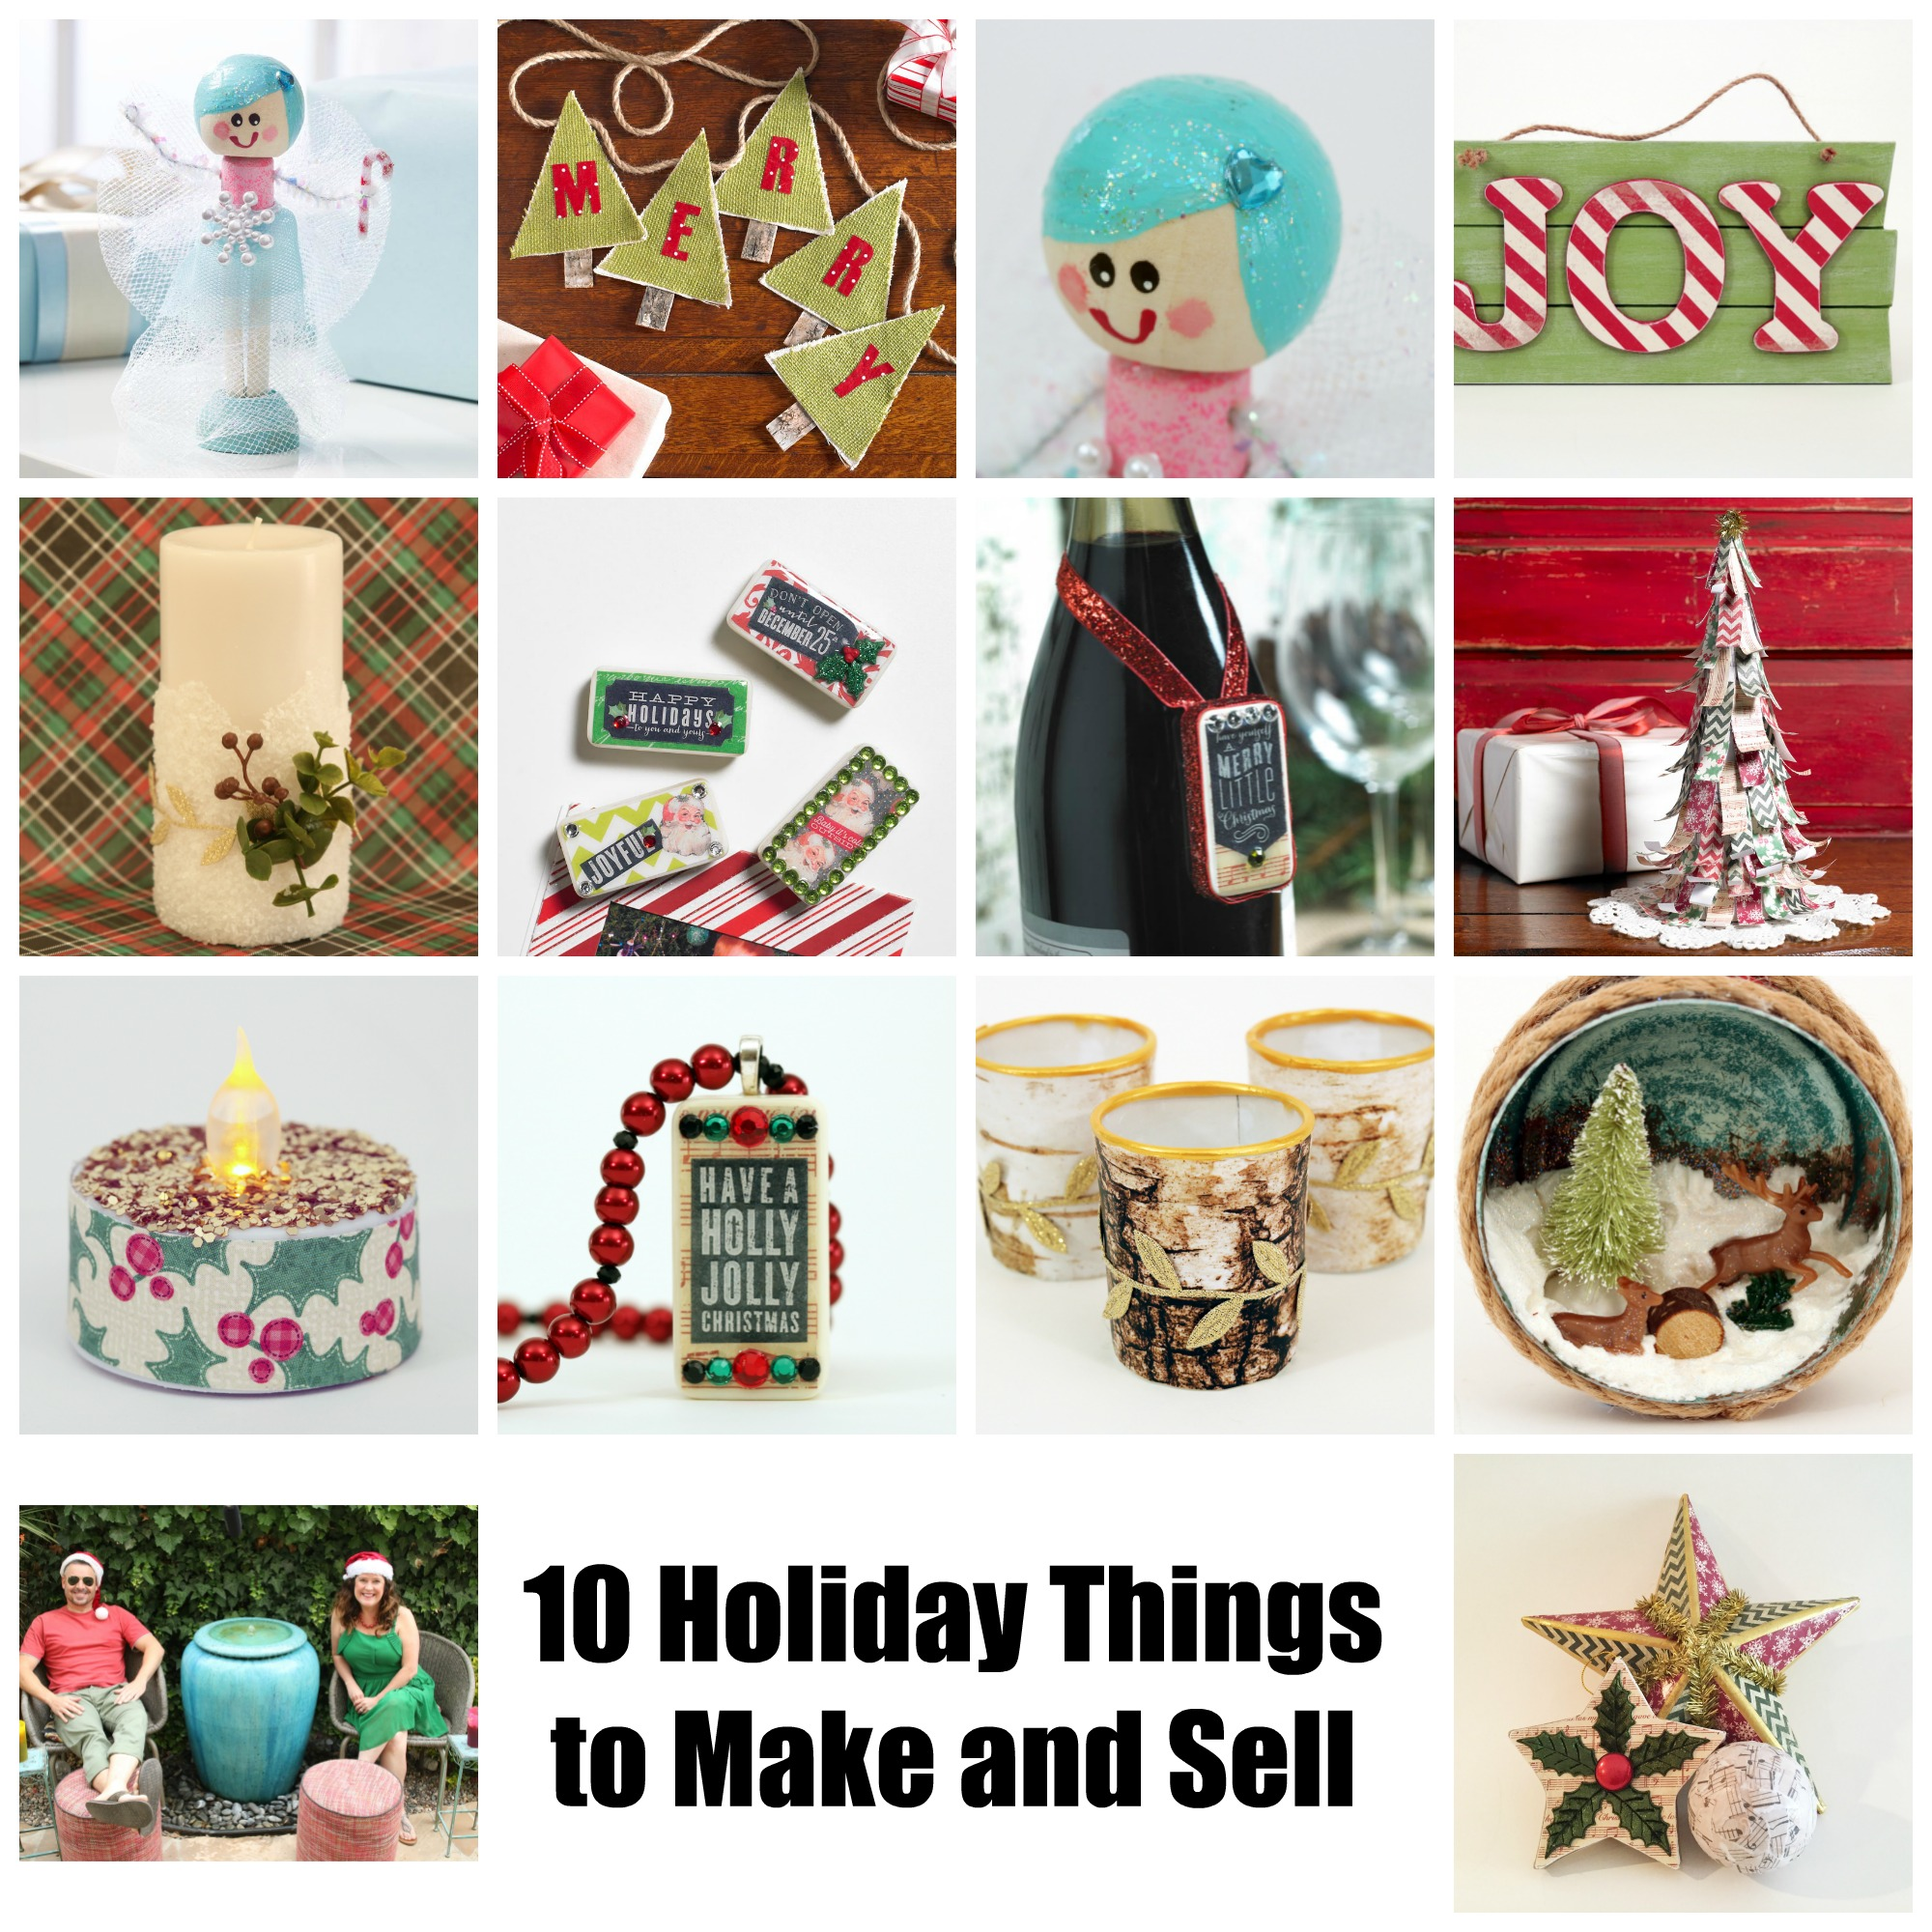 10-holiday-things-to-make-and-sell